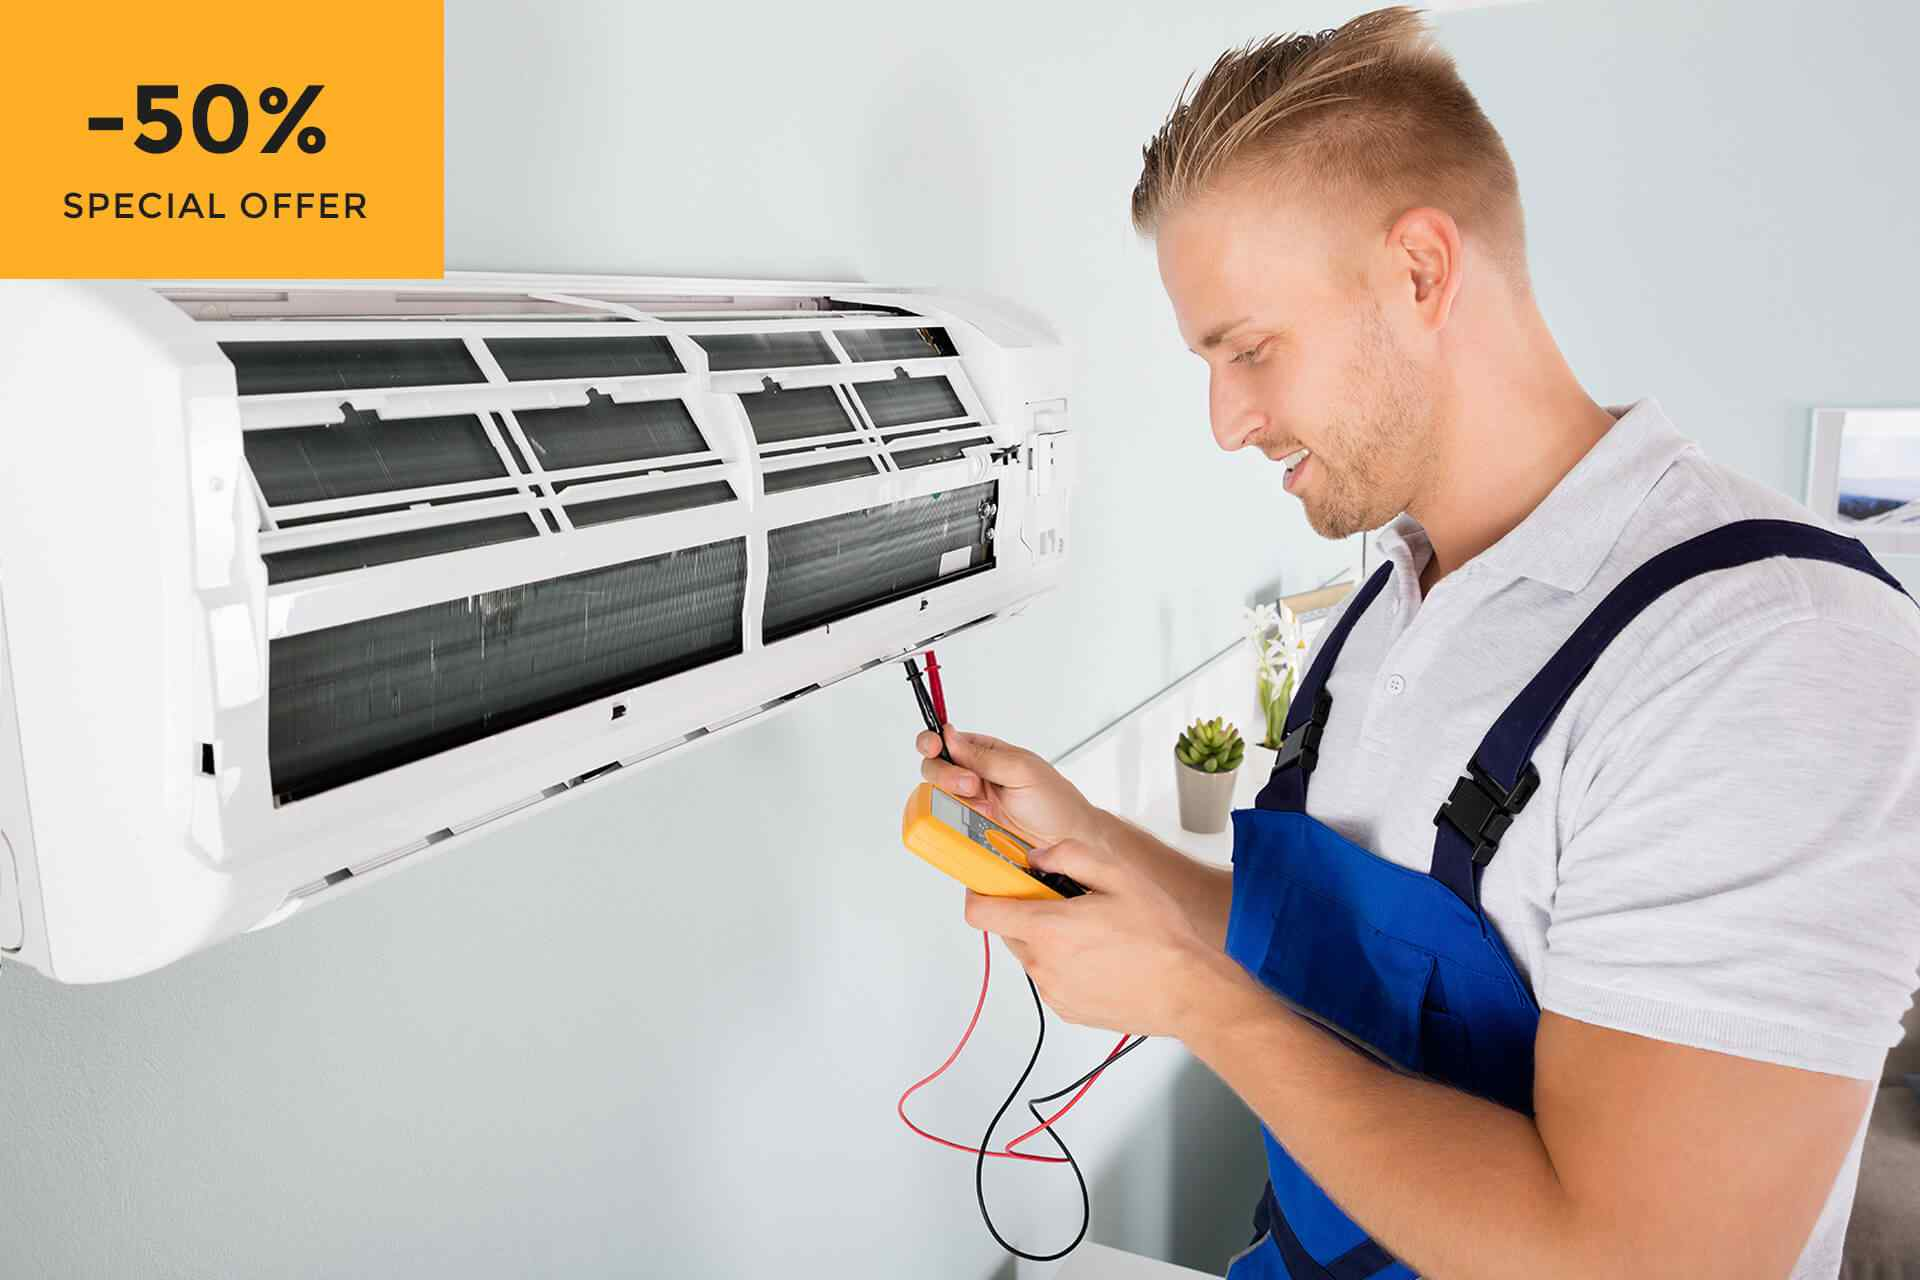 Special AC tune pricing! Call for pricing in your area and home